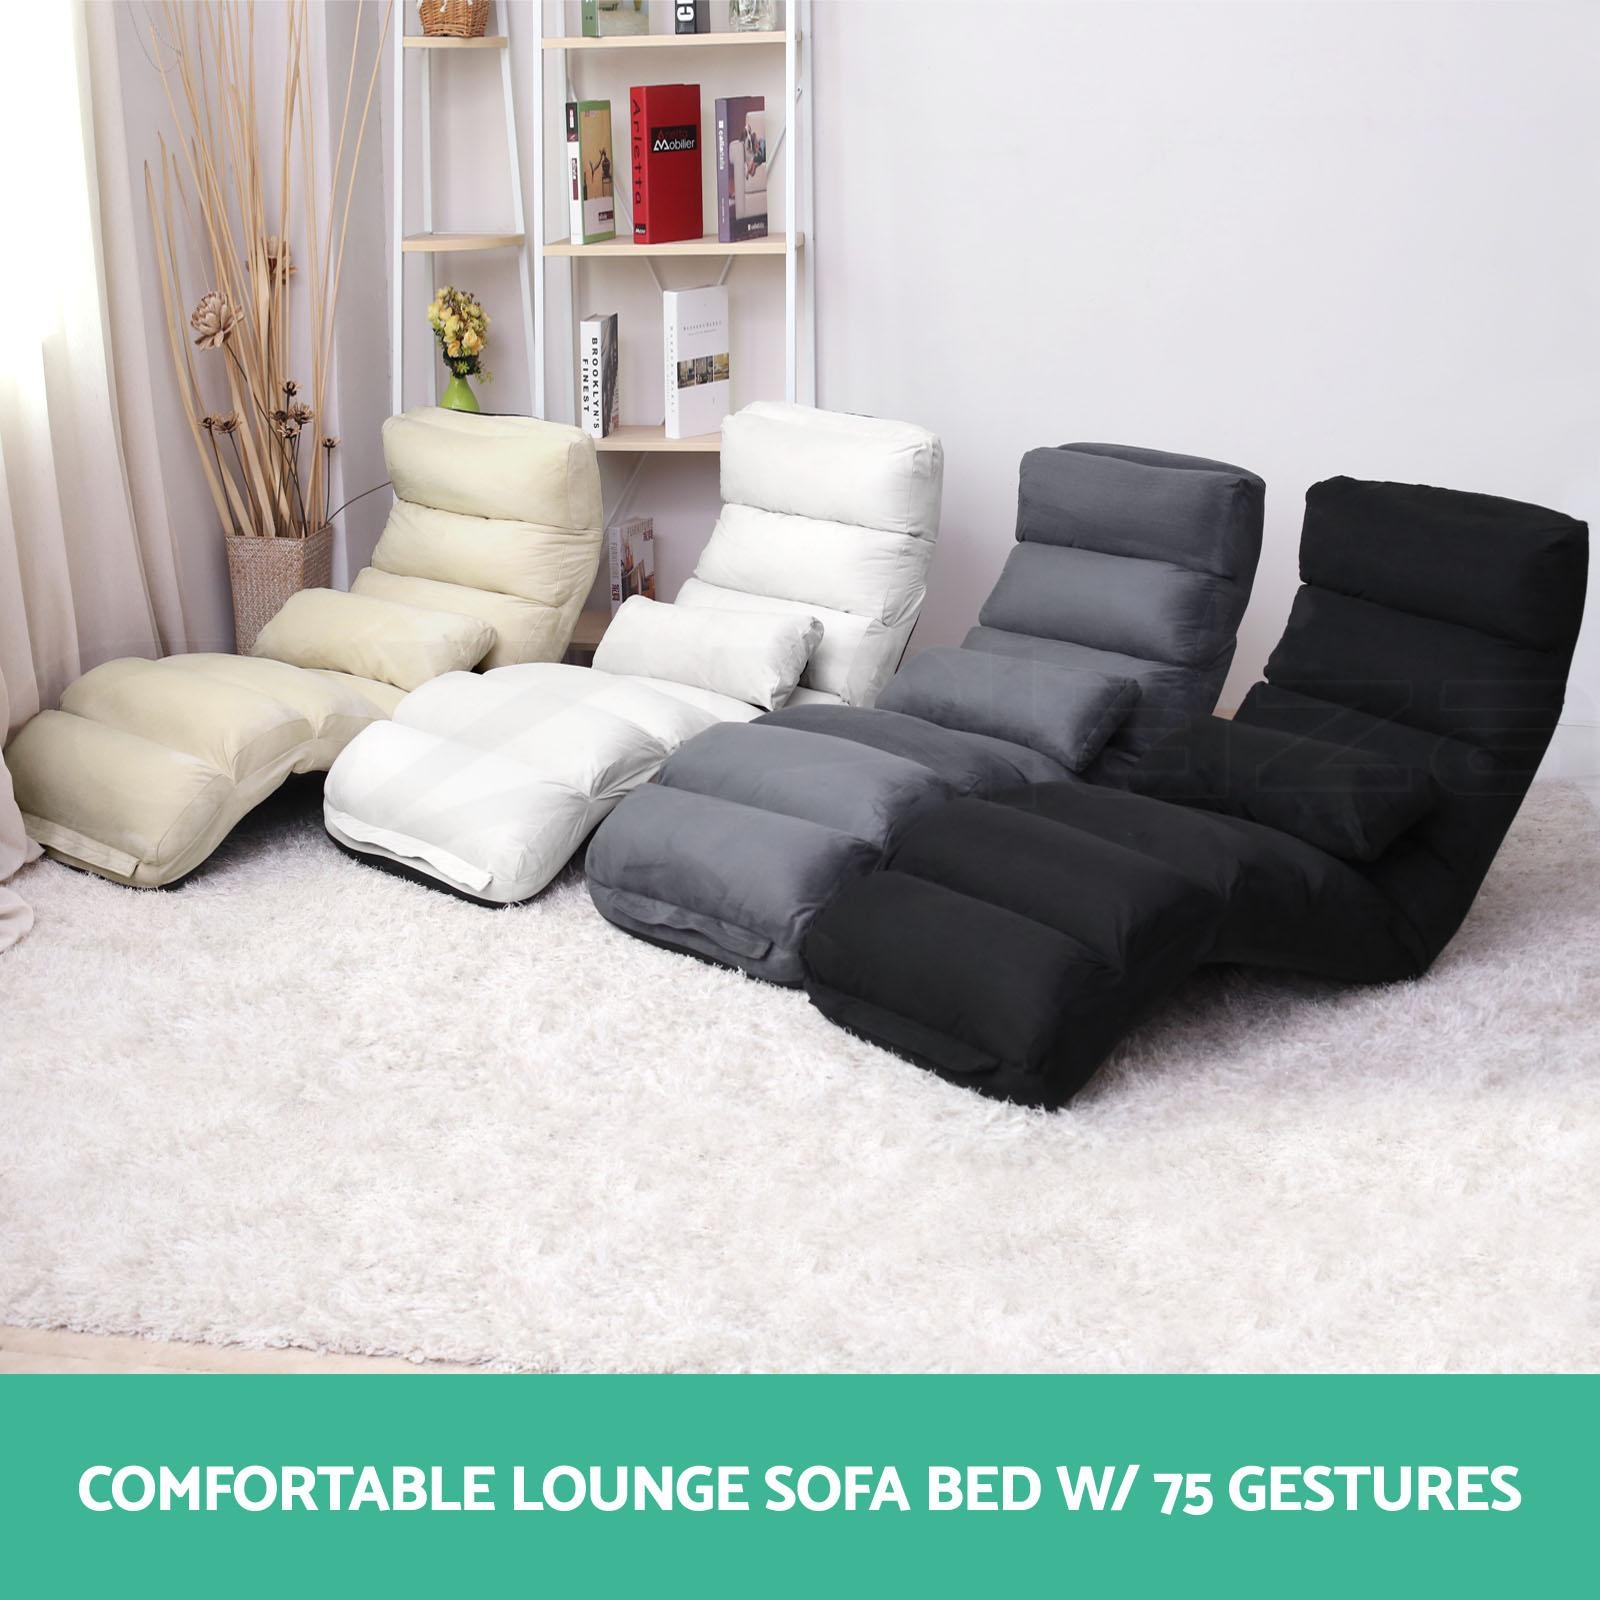 Lounge Sofa Bed Floor Recliner Folding Chaise Chair Adjustable Regarding Sofa Lounger Beds (Image 13 of 20)